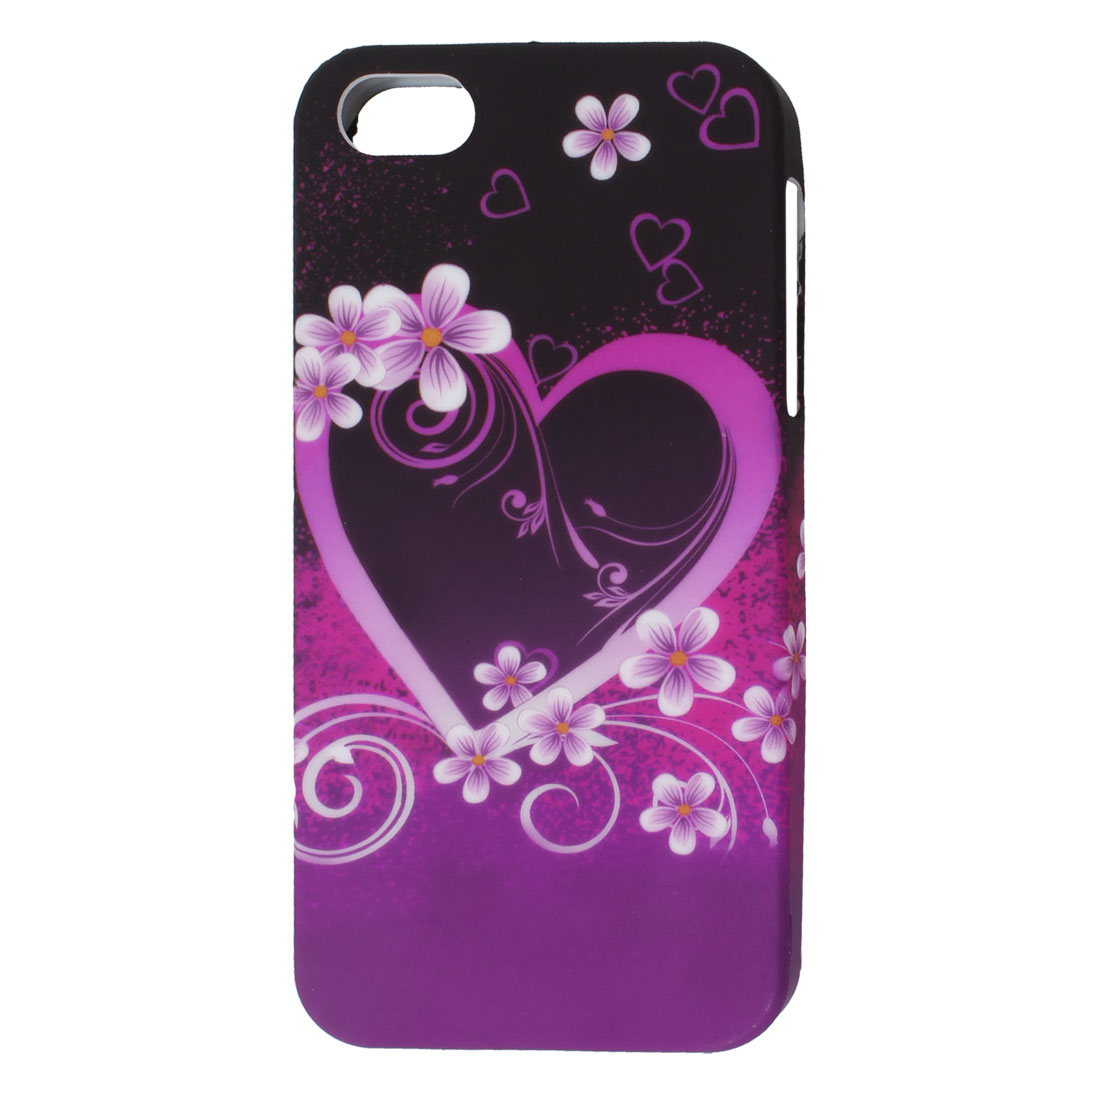 Black Purple Flower Heart Pattern TPU Soft Case Cover for Apple iPhone 5 5G